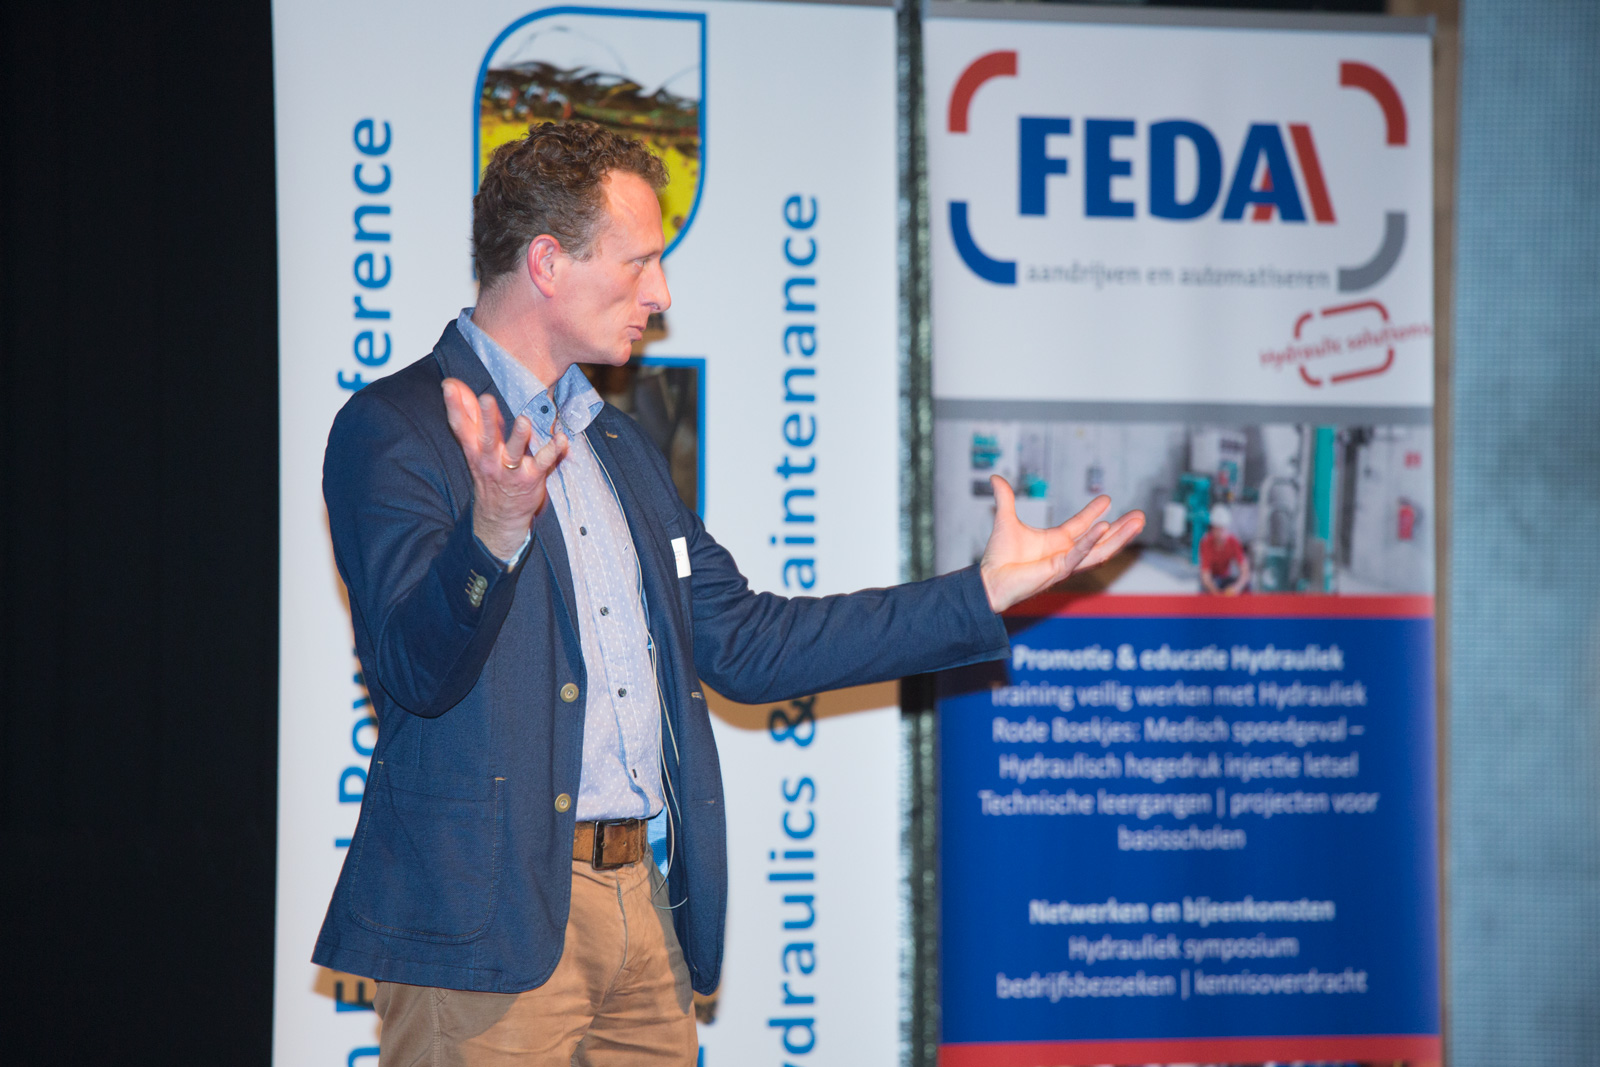 Evenement: Dutch Fluid Power Conference II